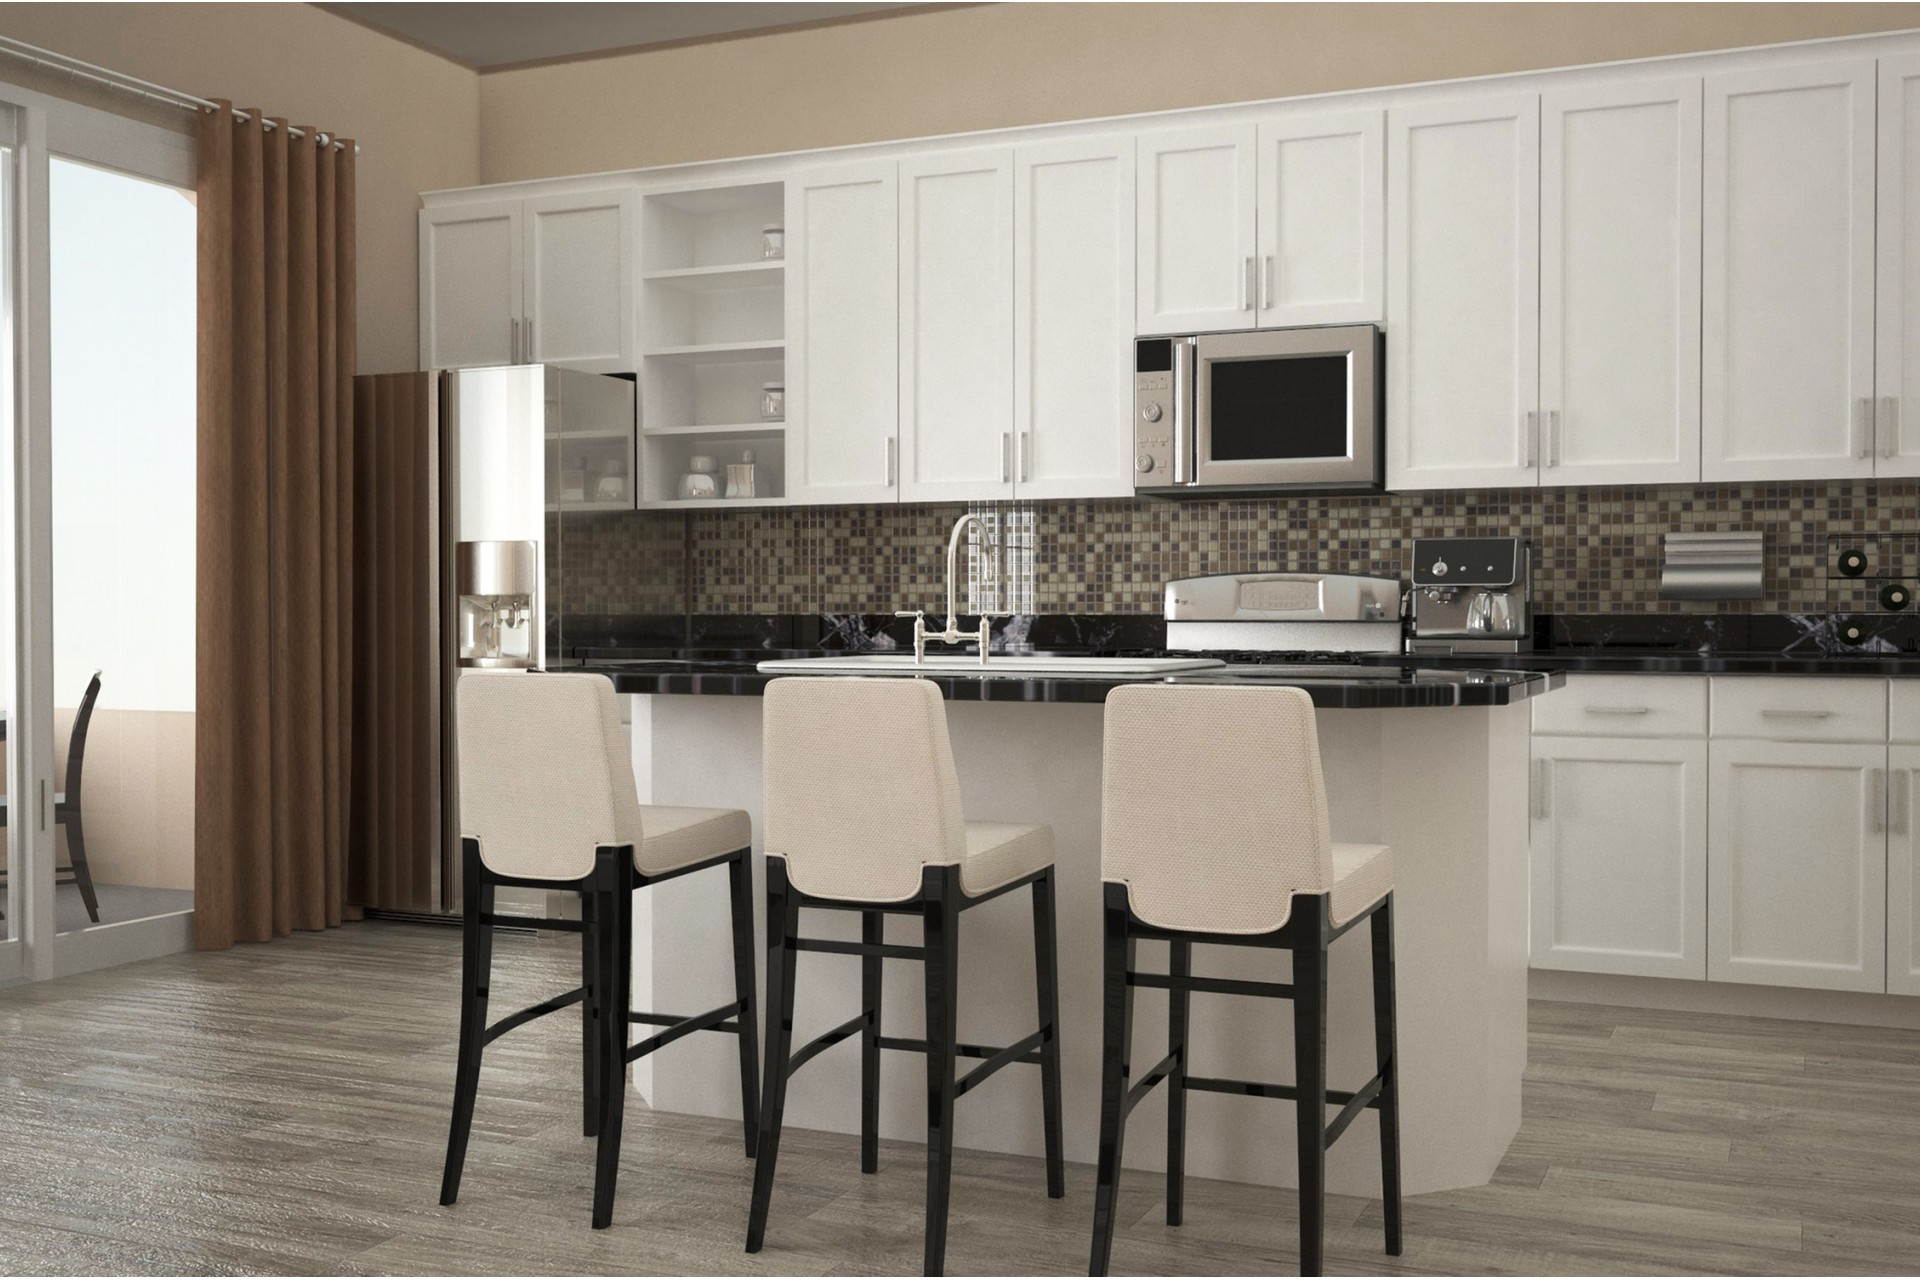 Lovely Bella Victoria Apartments Mesa, AZ Dining Room And Kitchen